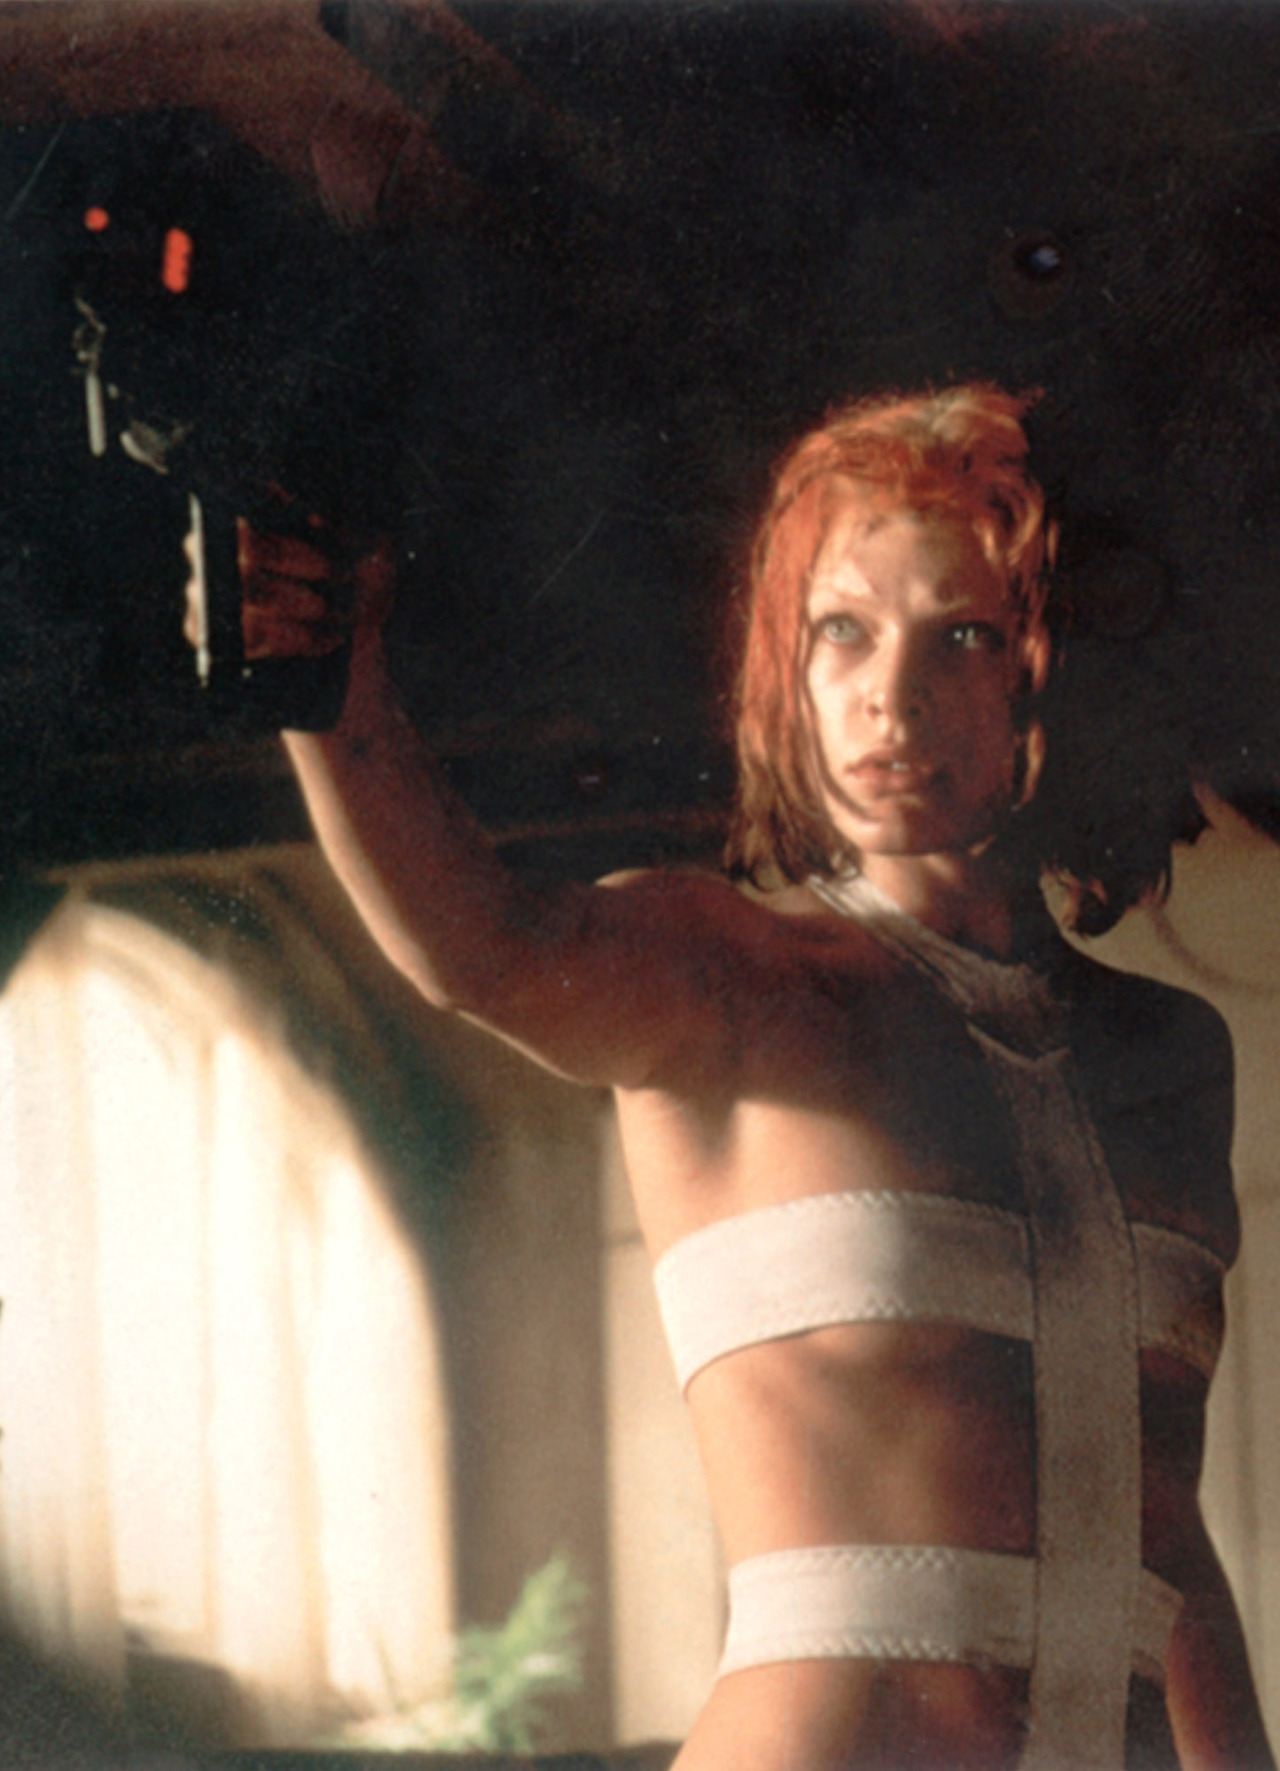 Milla Jovovich in The Fifth Element